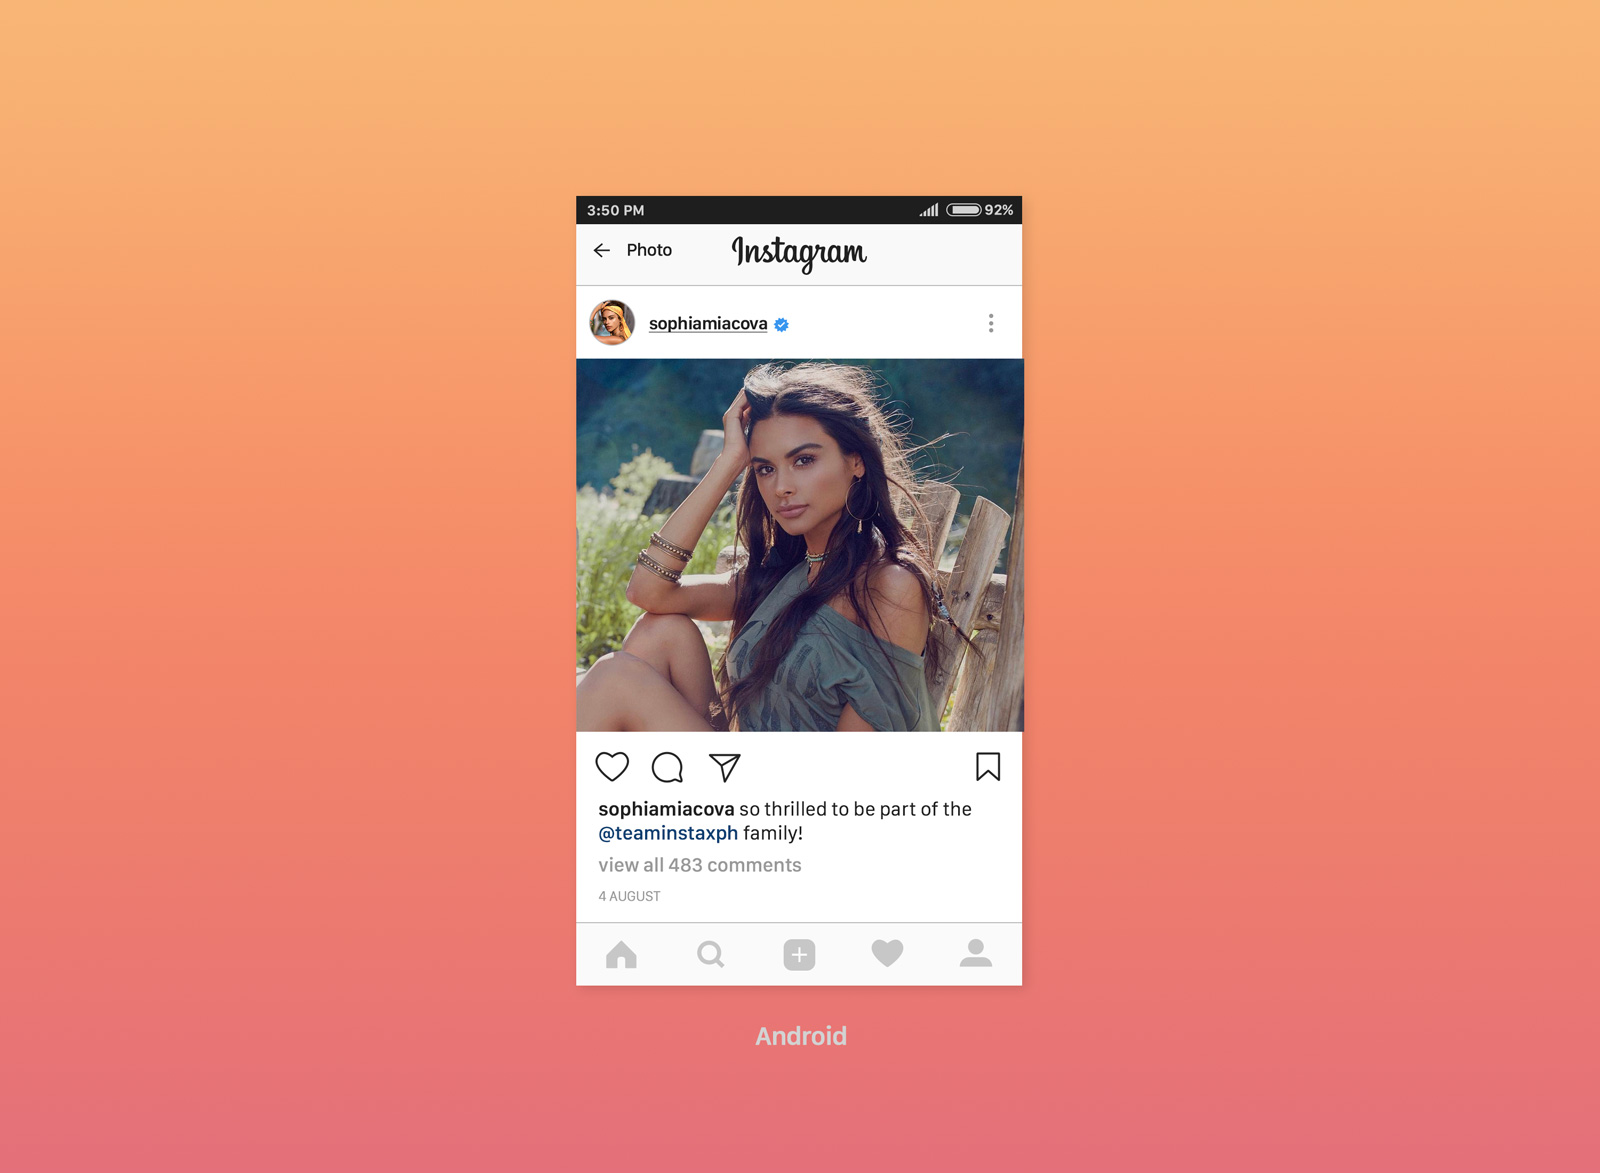 how to change profile picture in instagram using computer